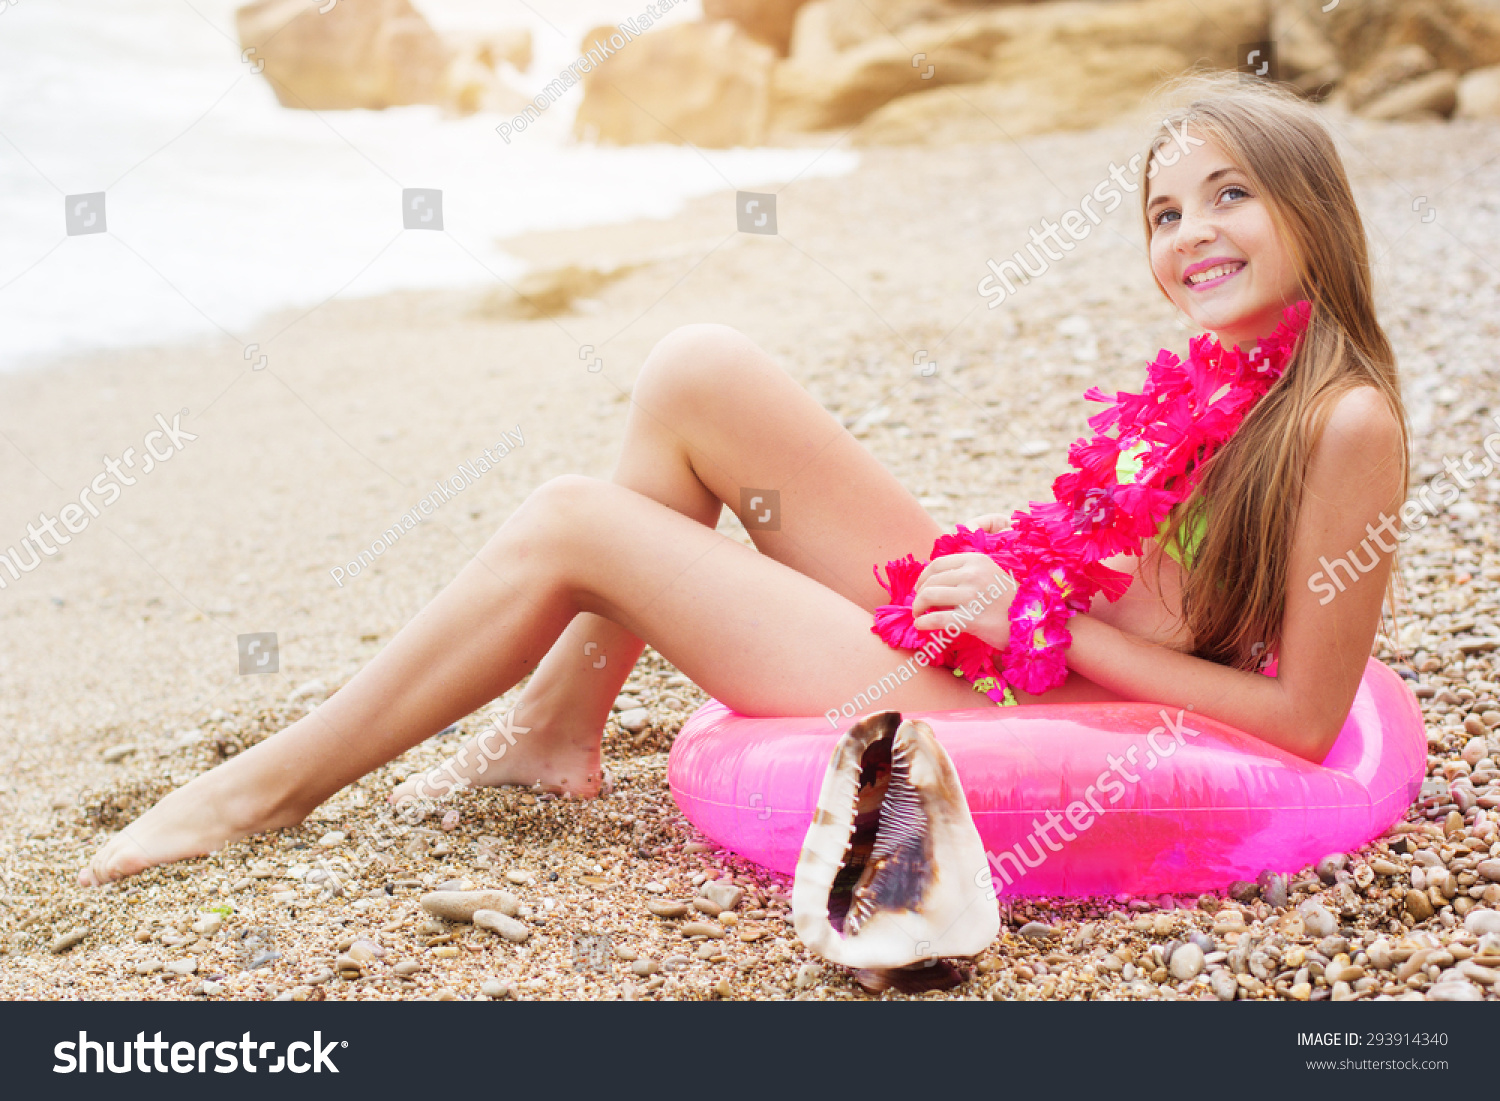 Cute teen girl wearing swimsuit pink stock photo 293914340 Cute teenage girls pics